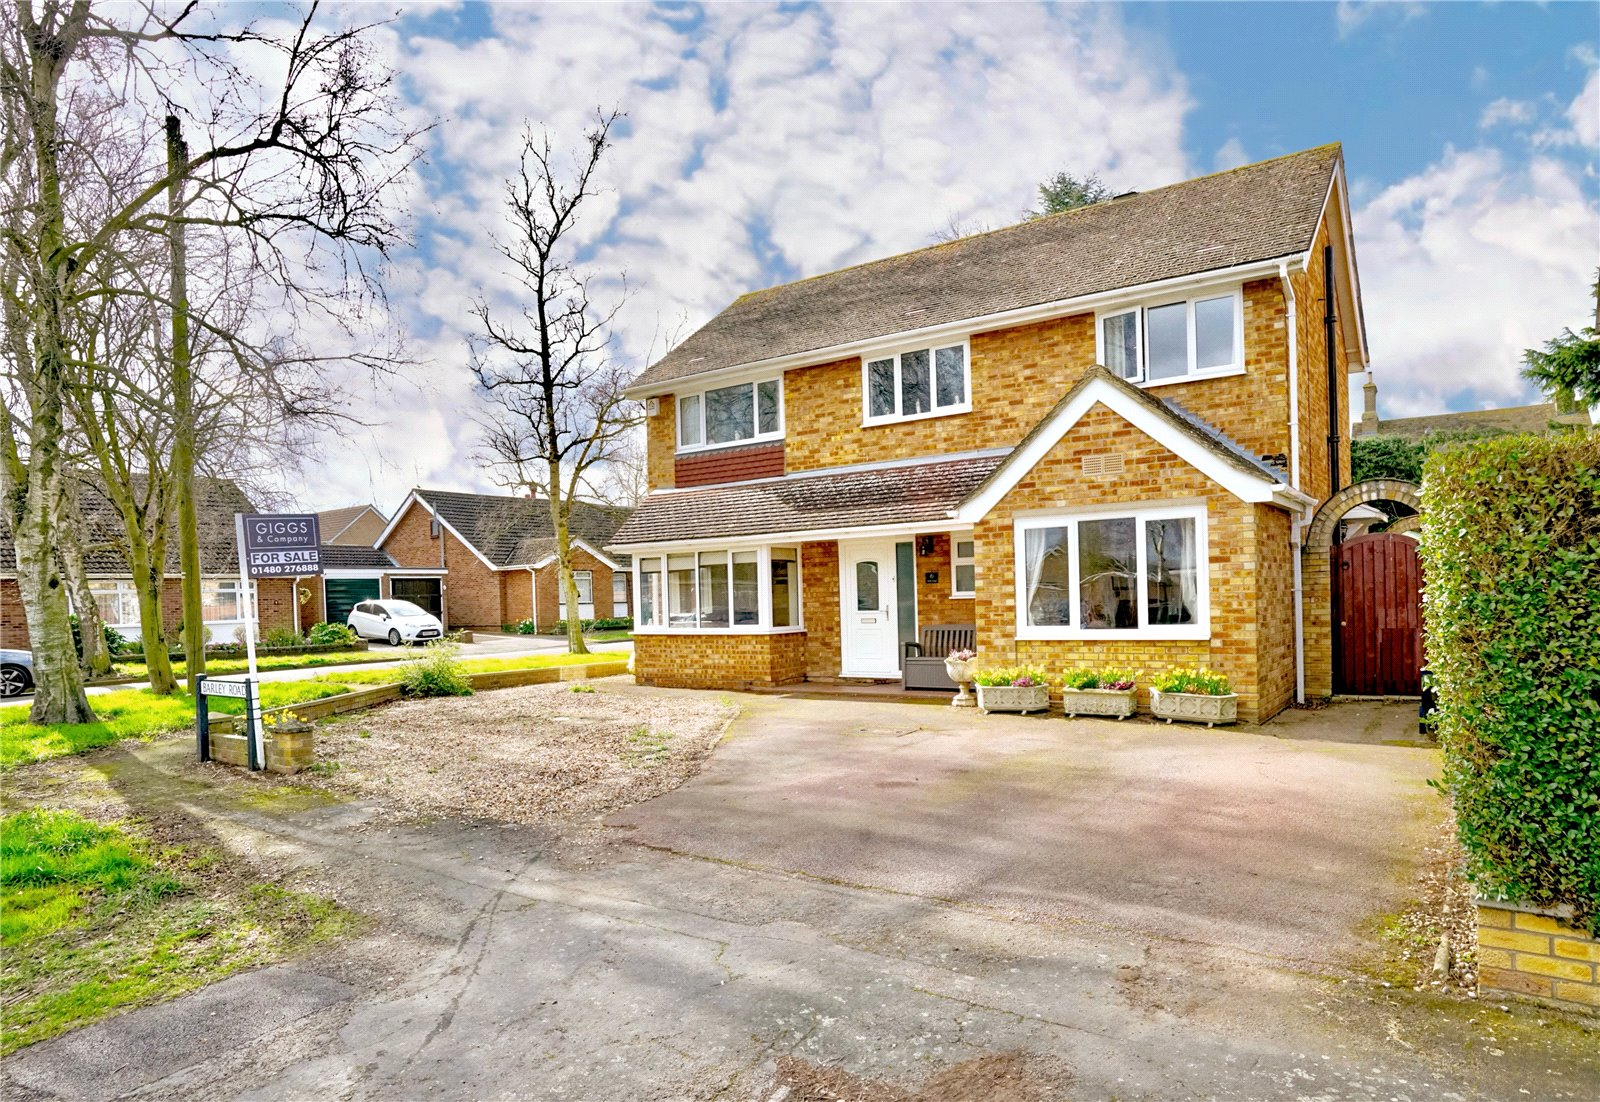 3 bed house for sale in Barley Road, Eaton Socon  - Property Image 4